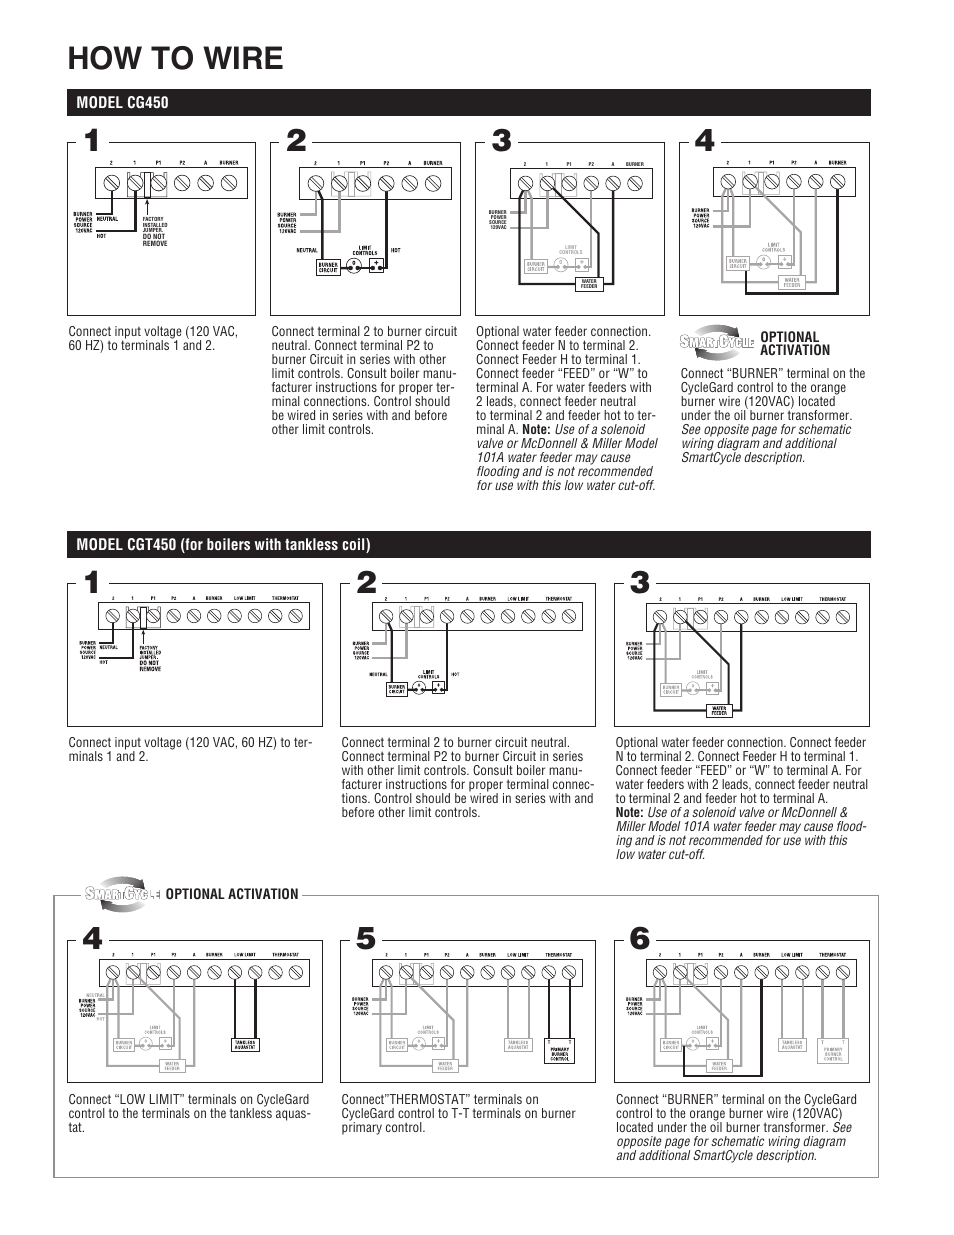 How To Wire Hydrolevel Cgt450 Series User Manual Page 2 4 120 Volt Schematic Wiring Diagram